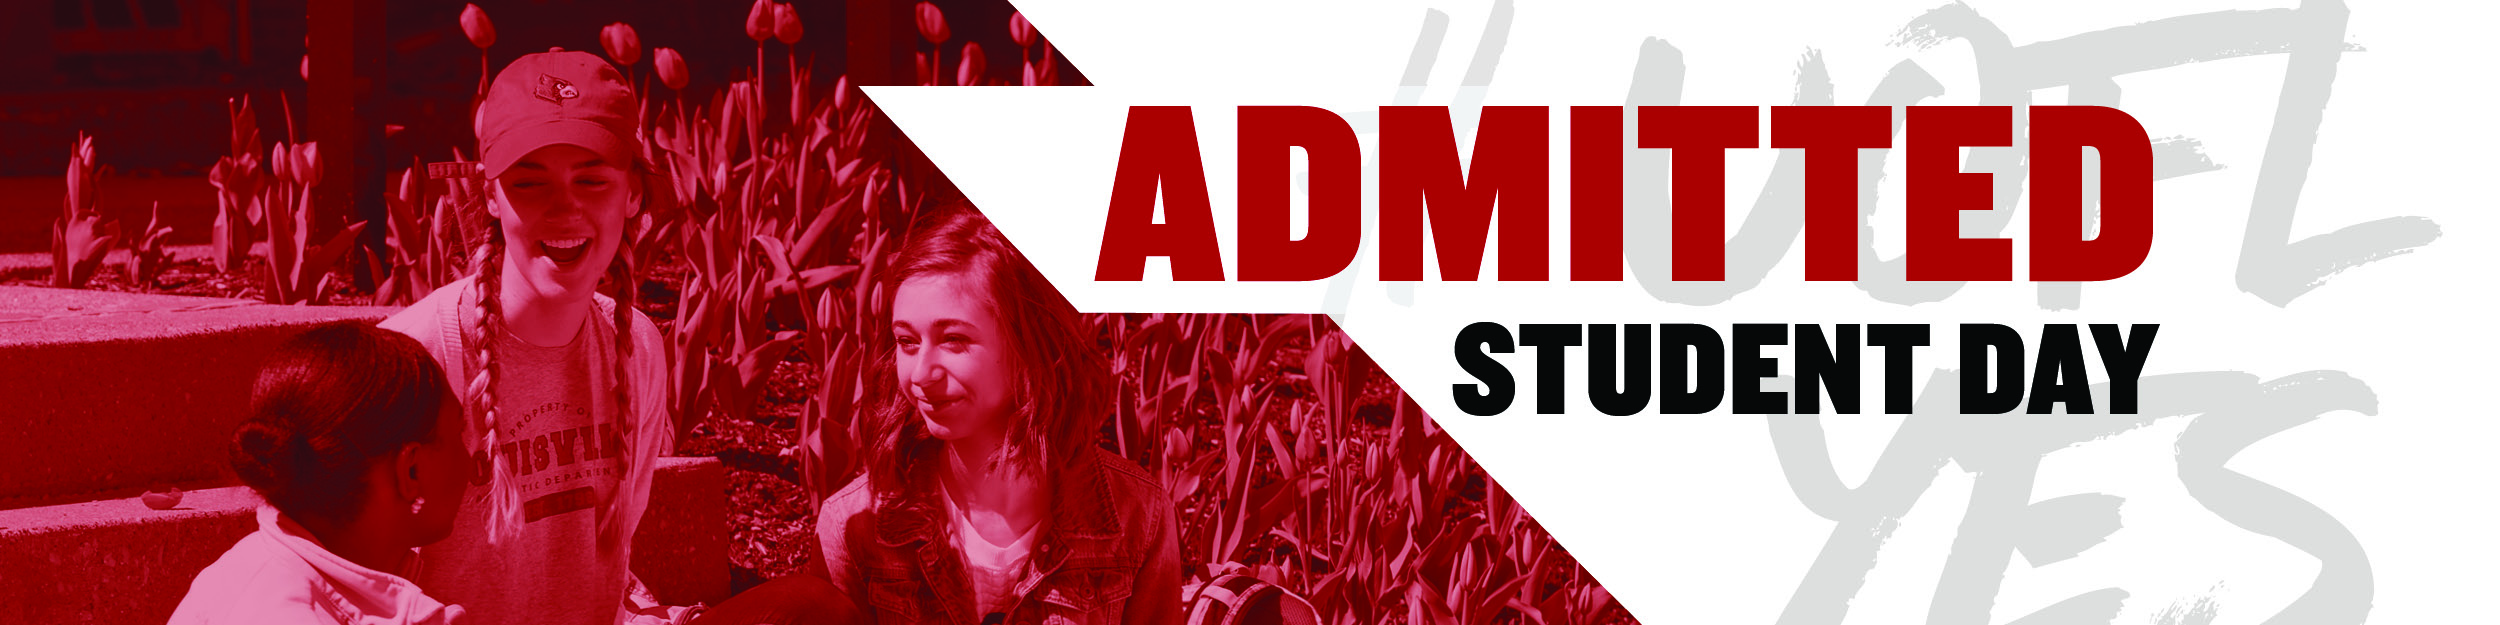 Admitted Student Day Banner